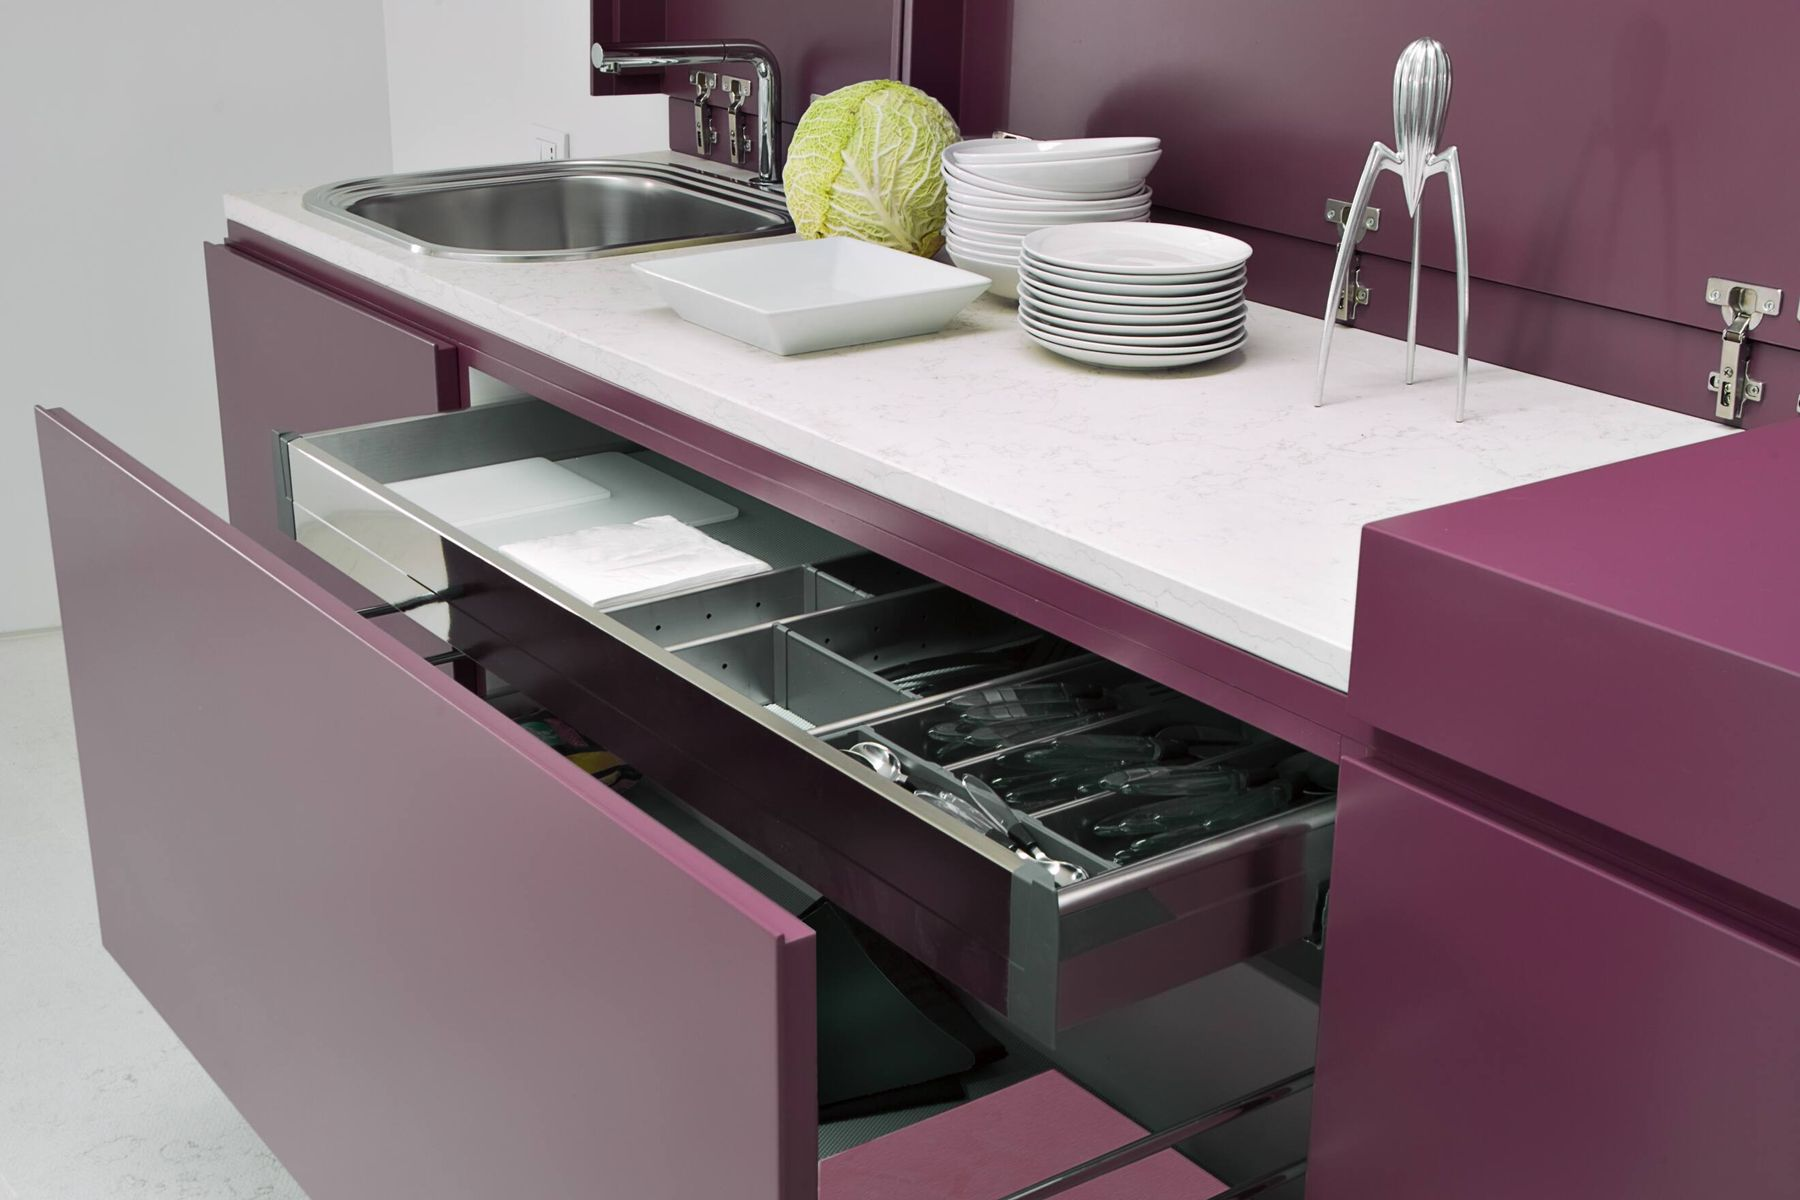 How to Deep-Clean Your Kitchen Drawers and